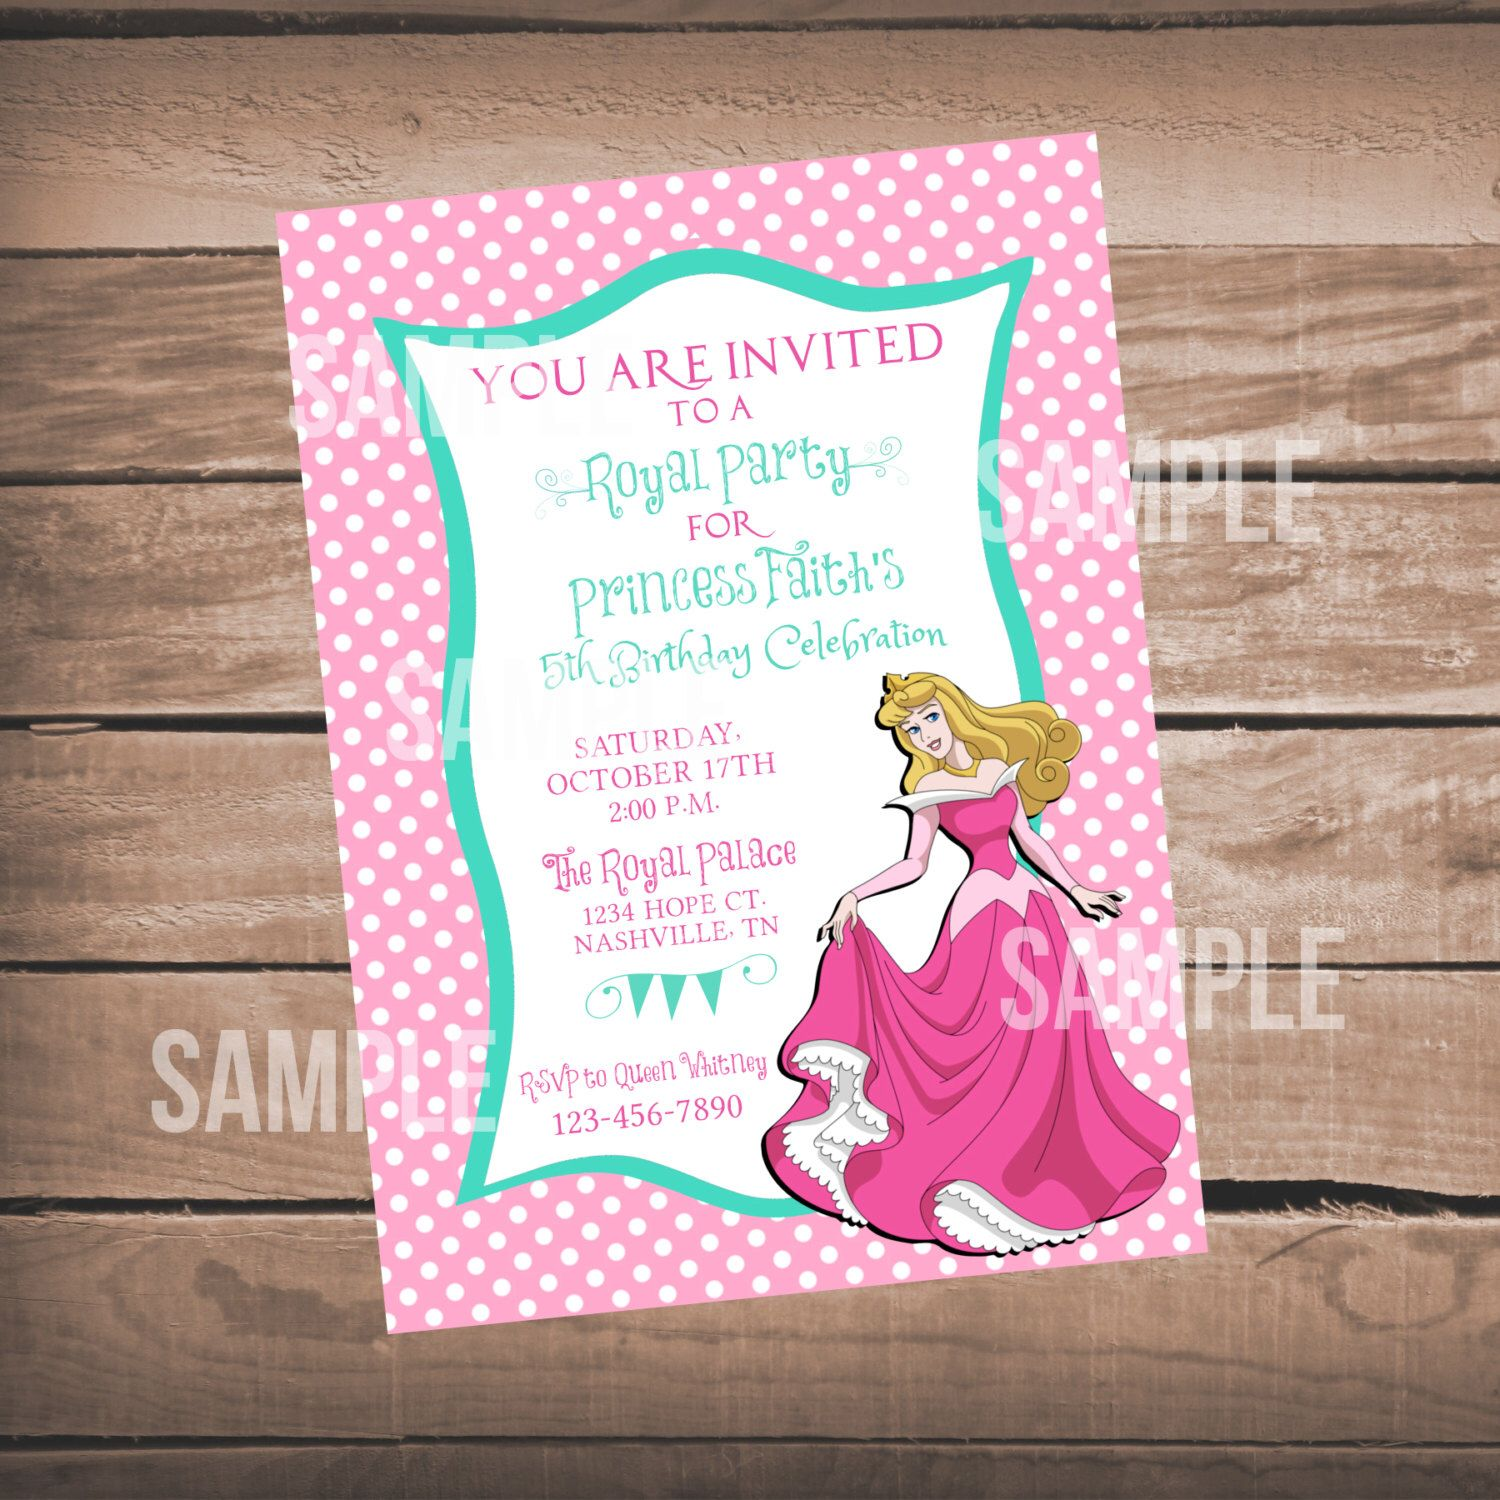 disney princess party invitation templates%0A example cover letter format